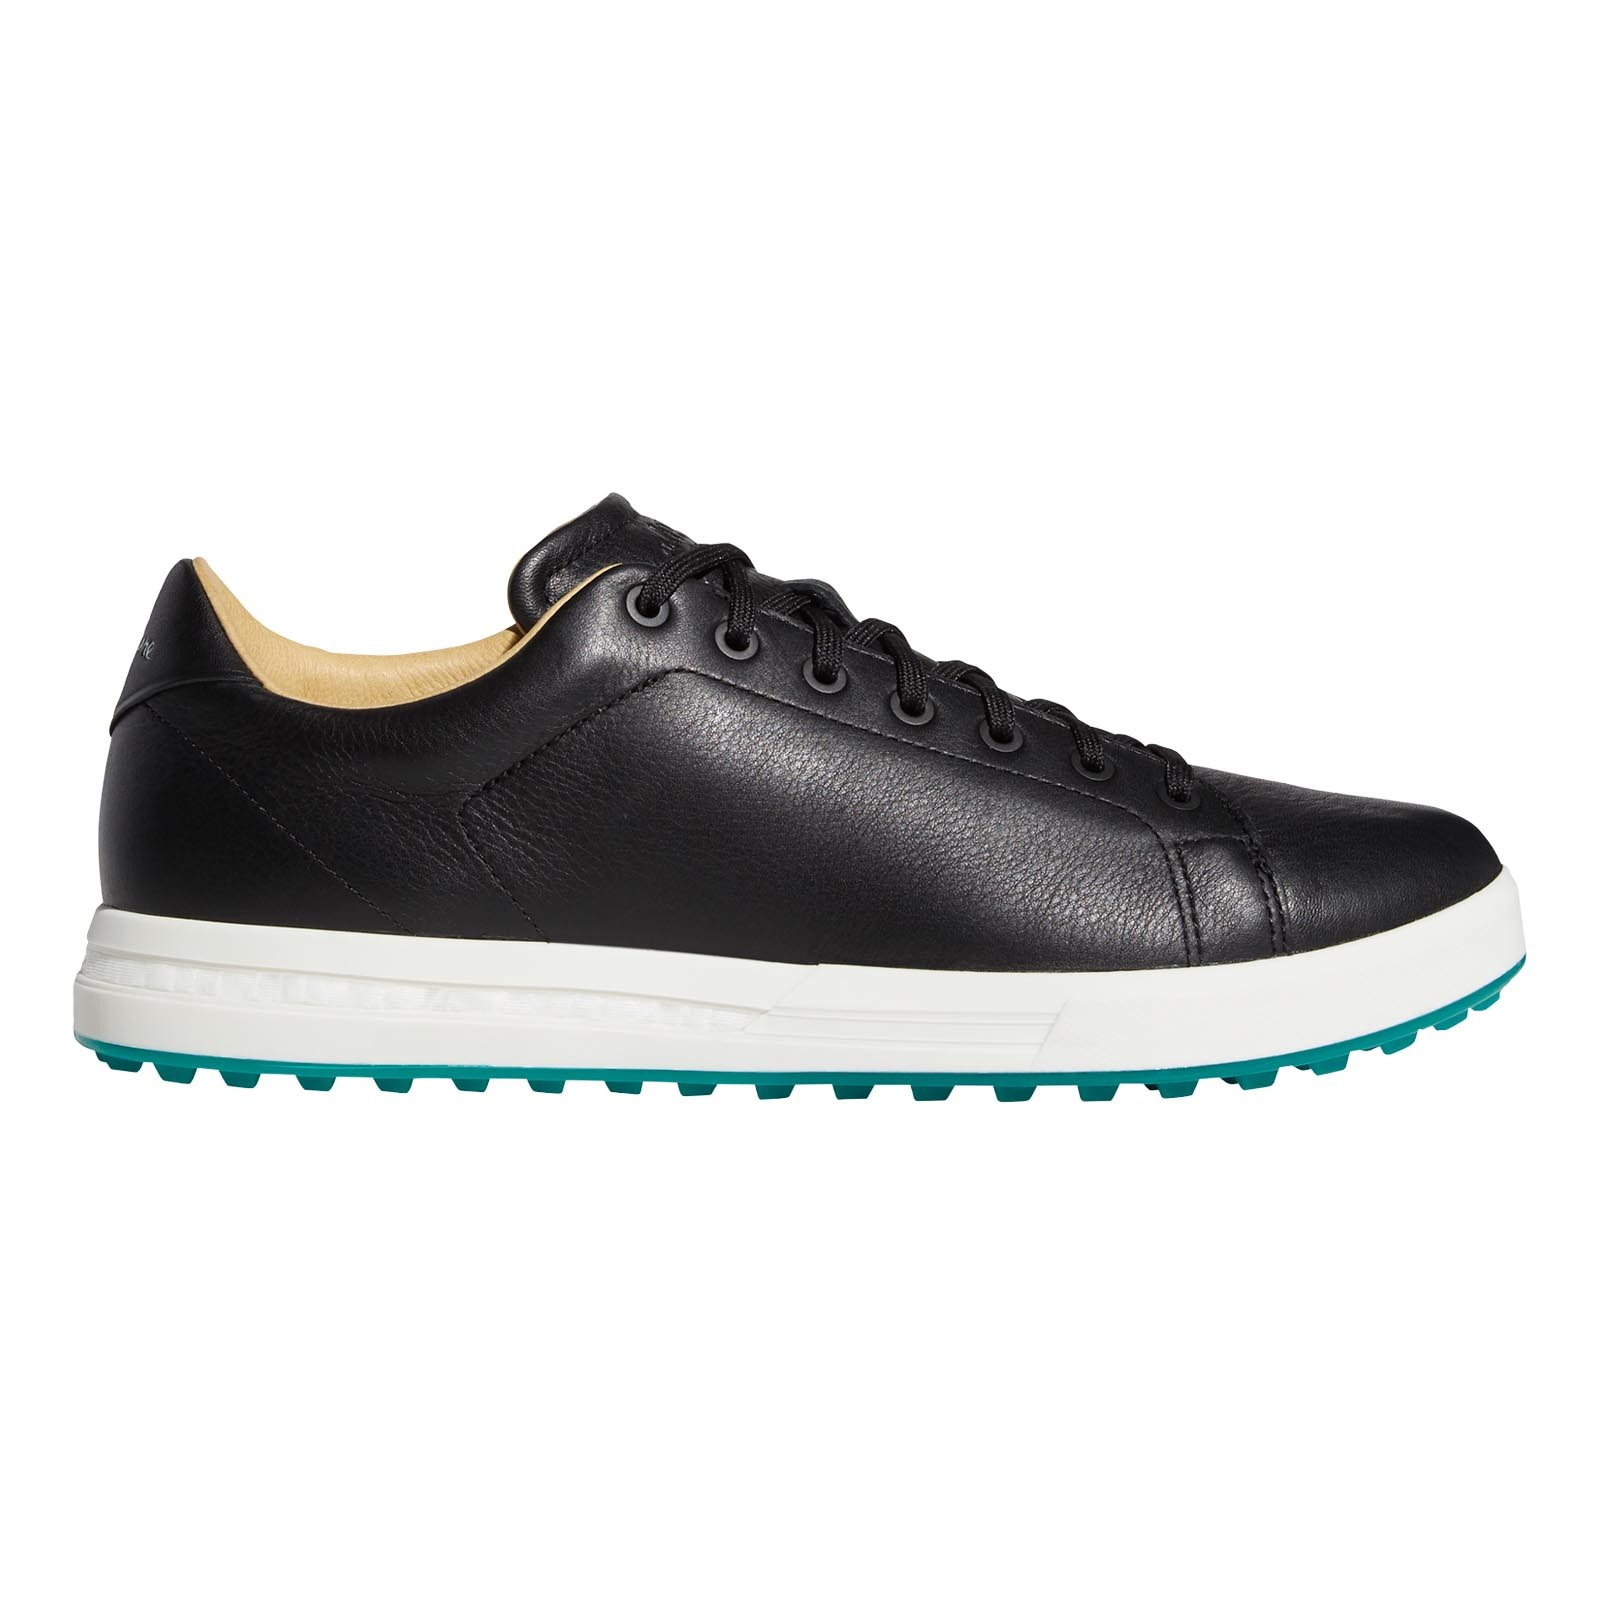 adidas Adipure SP 2 Spikeless Golf Shoes